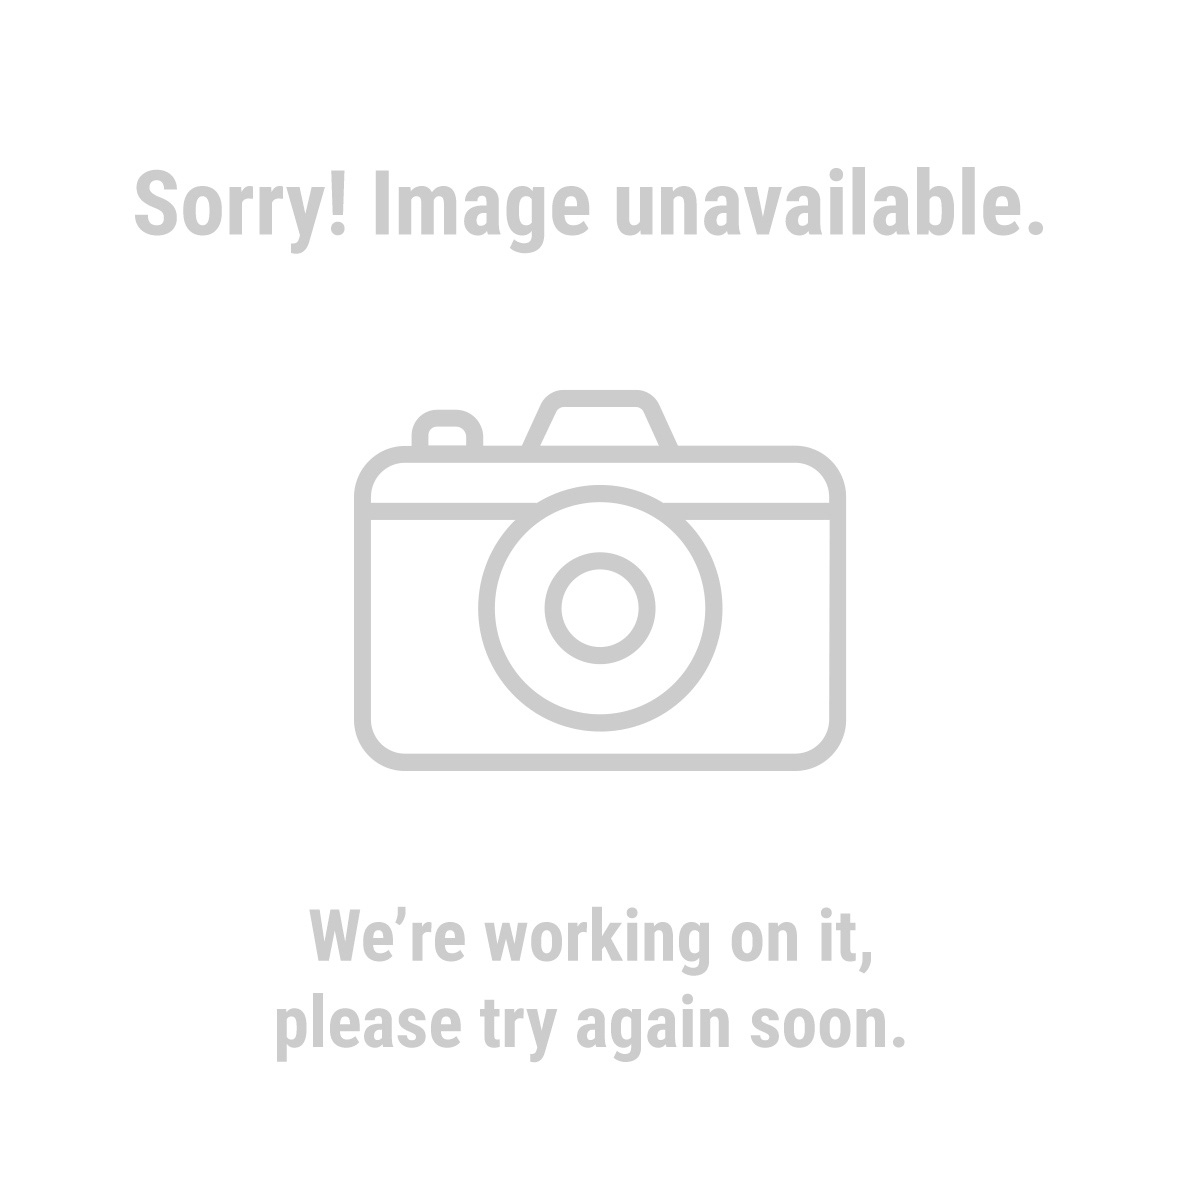 Haul-Master® 61164 200 lb. Capacity Lightweight Mover's Dolly